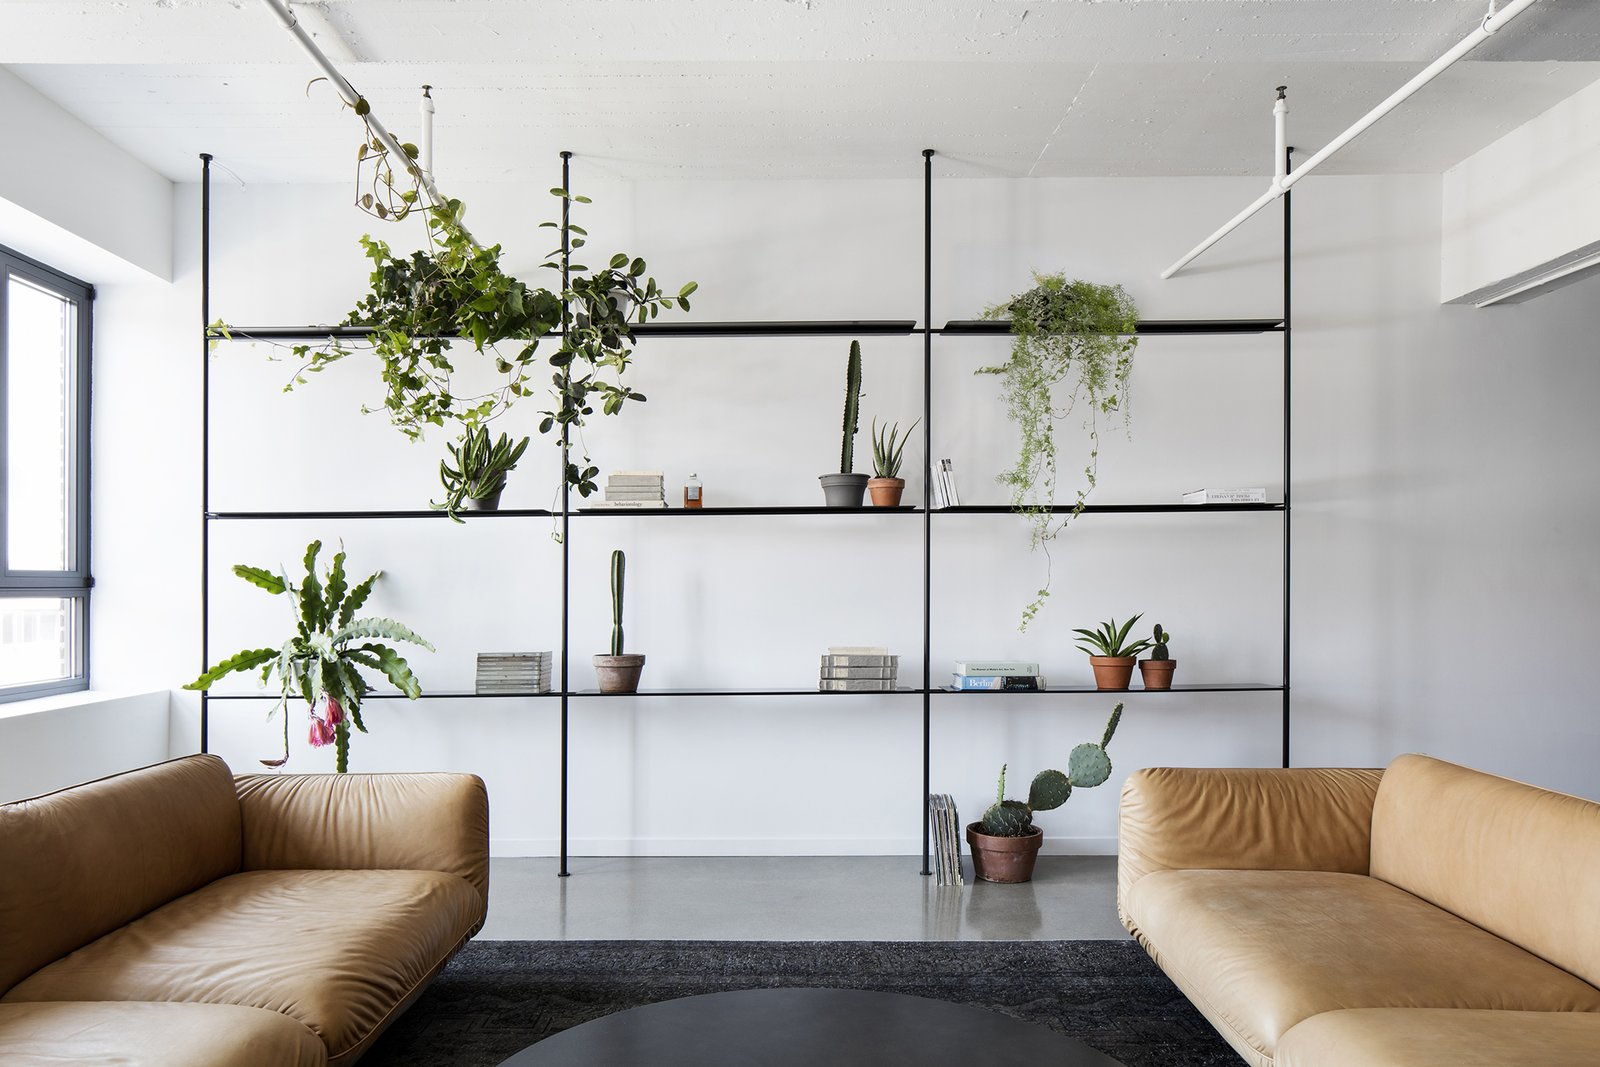 Living Room, Sofa, Bookcase, Shelves, Storage, Concrete Floor, Coffee Tables, and Rug Floor  Saint-Laurent Apartment by Atelier Barda